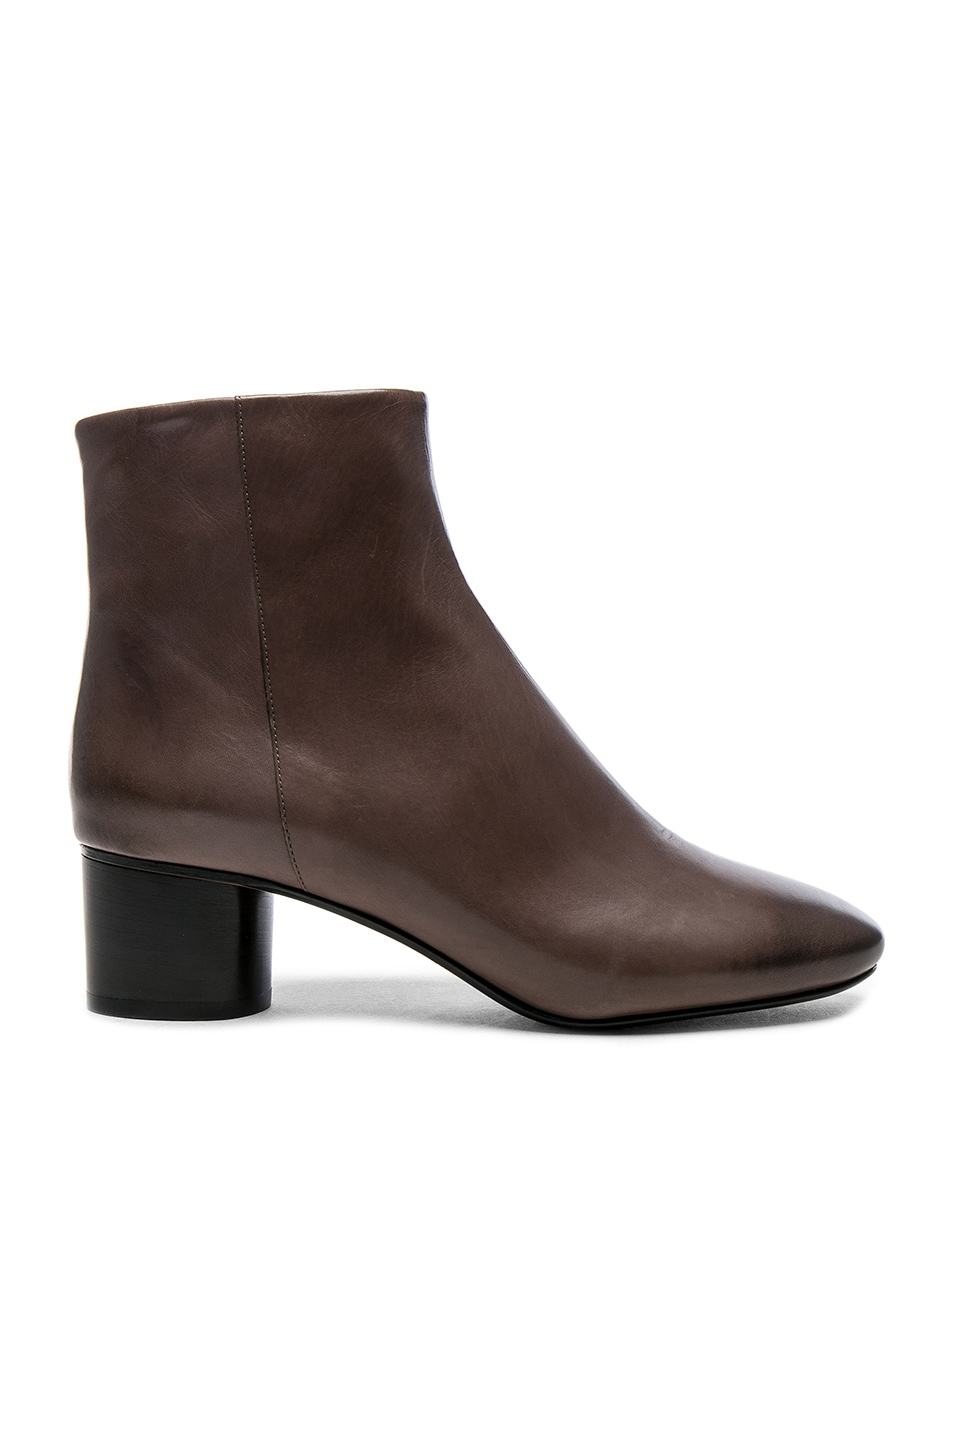 Image 1 of Isabel Marant Leather Danay Boots in Taupe